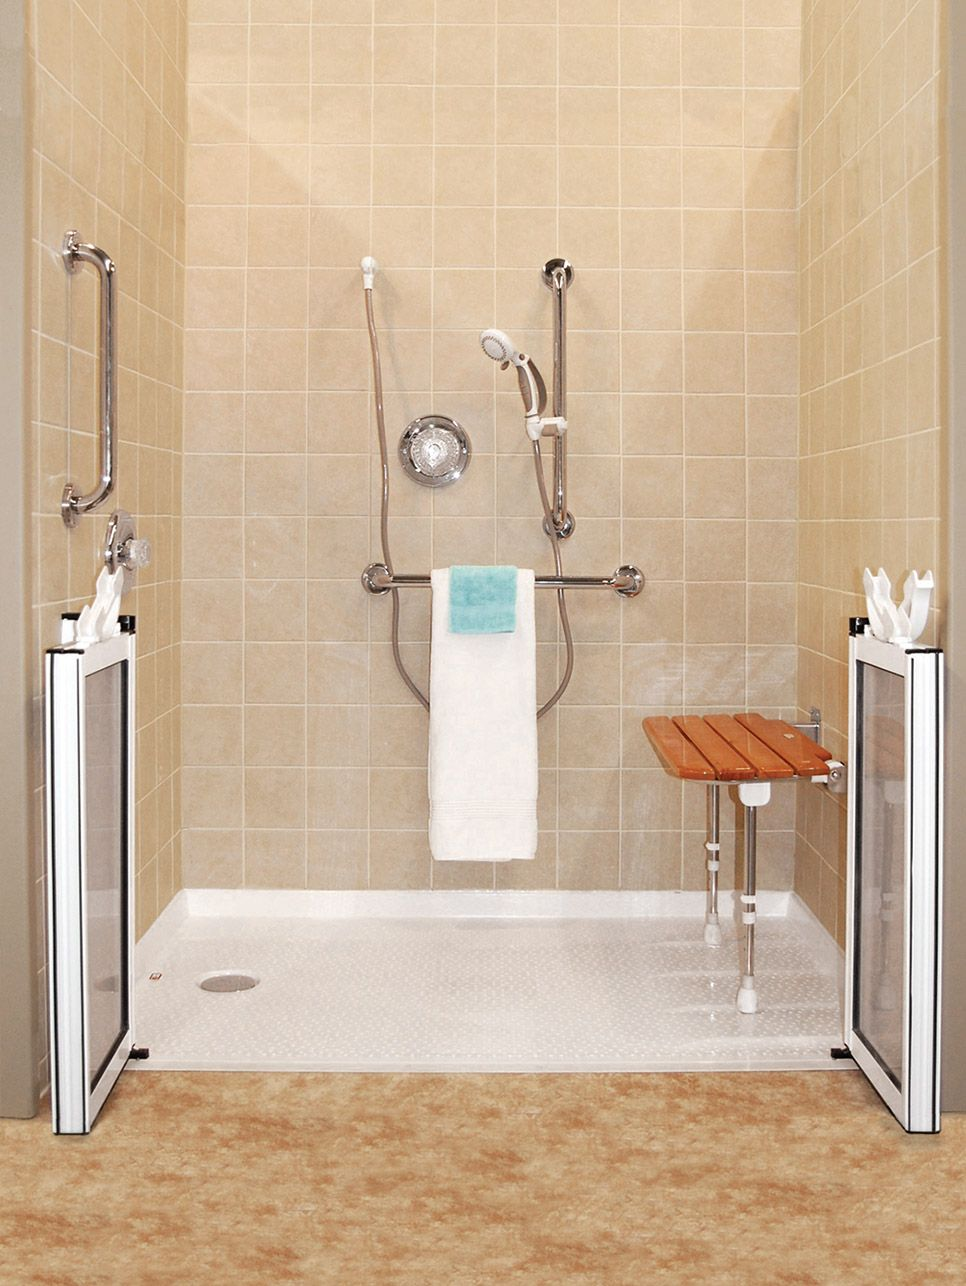 Get A Sparkling New Bathroom Home Improvement Projects Are An Excellent Way To Add Value And Handicap Bathroom Accessible Bathroom Design Accessible Bathroom